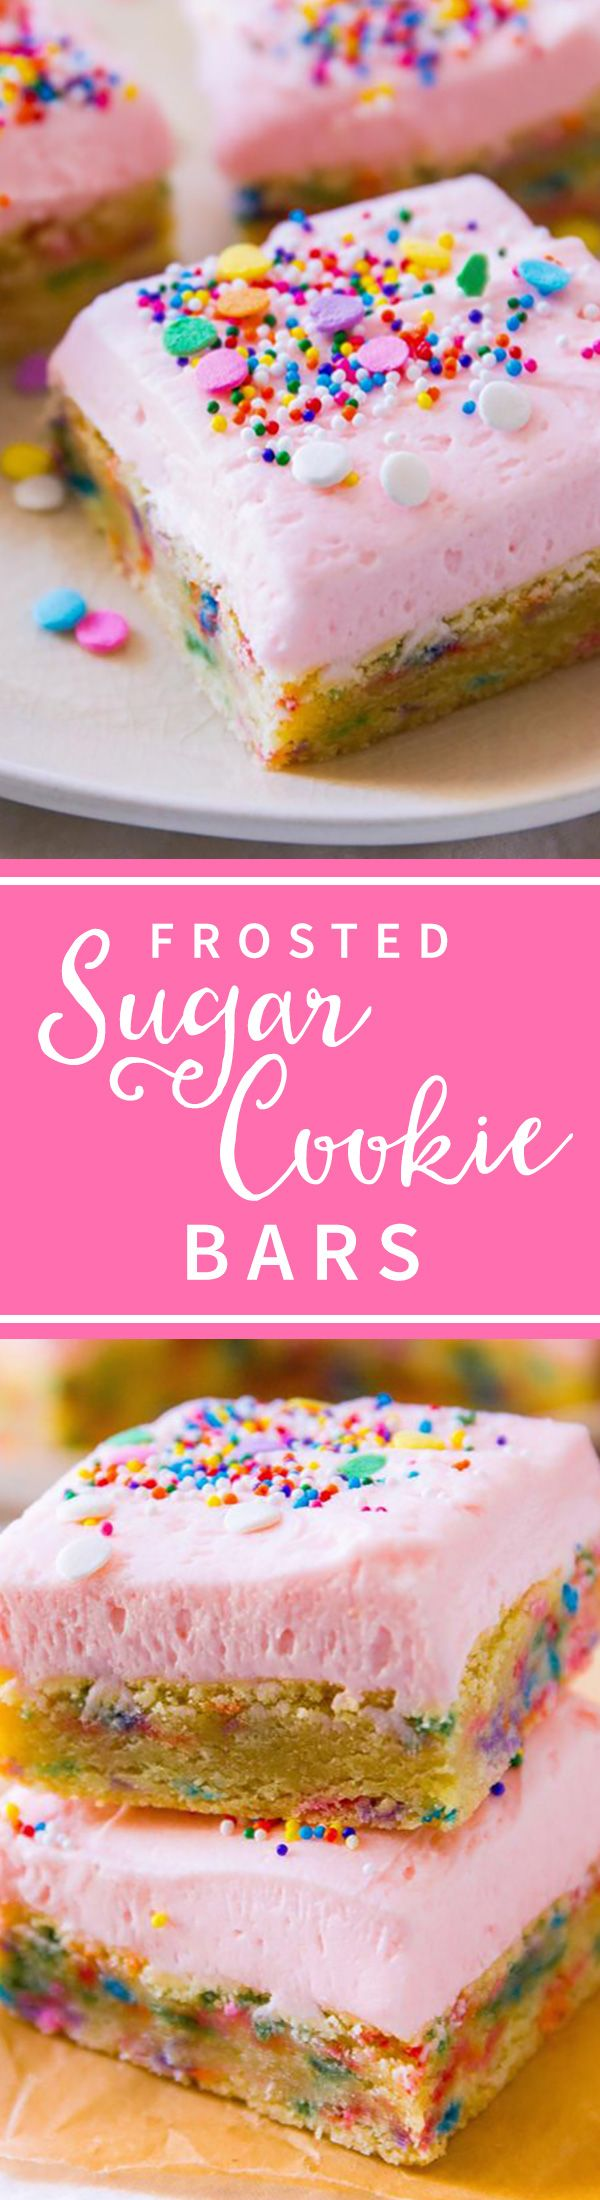 Soft and sweet sprinkle cookie bars! Funfetti frosted sugar cookie bars with pink frosting recipe on http://sallysbakingaddiction.com/2014/04/08/frosted-sugar-cookie-bars/